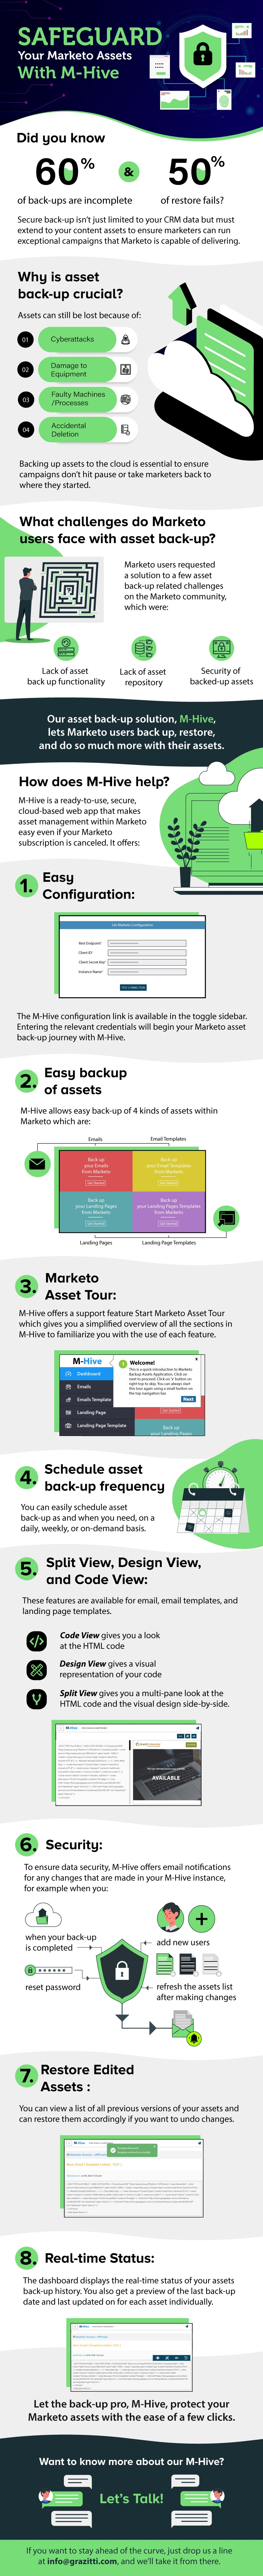 Safeguard Your Marketo Assets With M-Hive #infographic